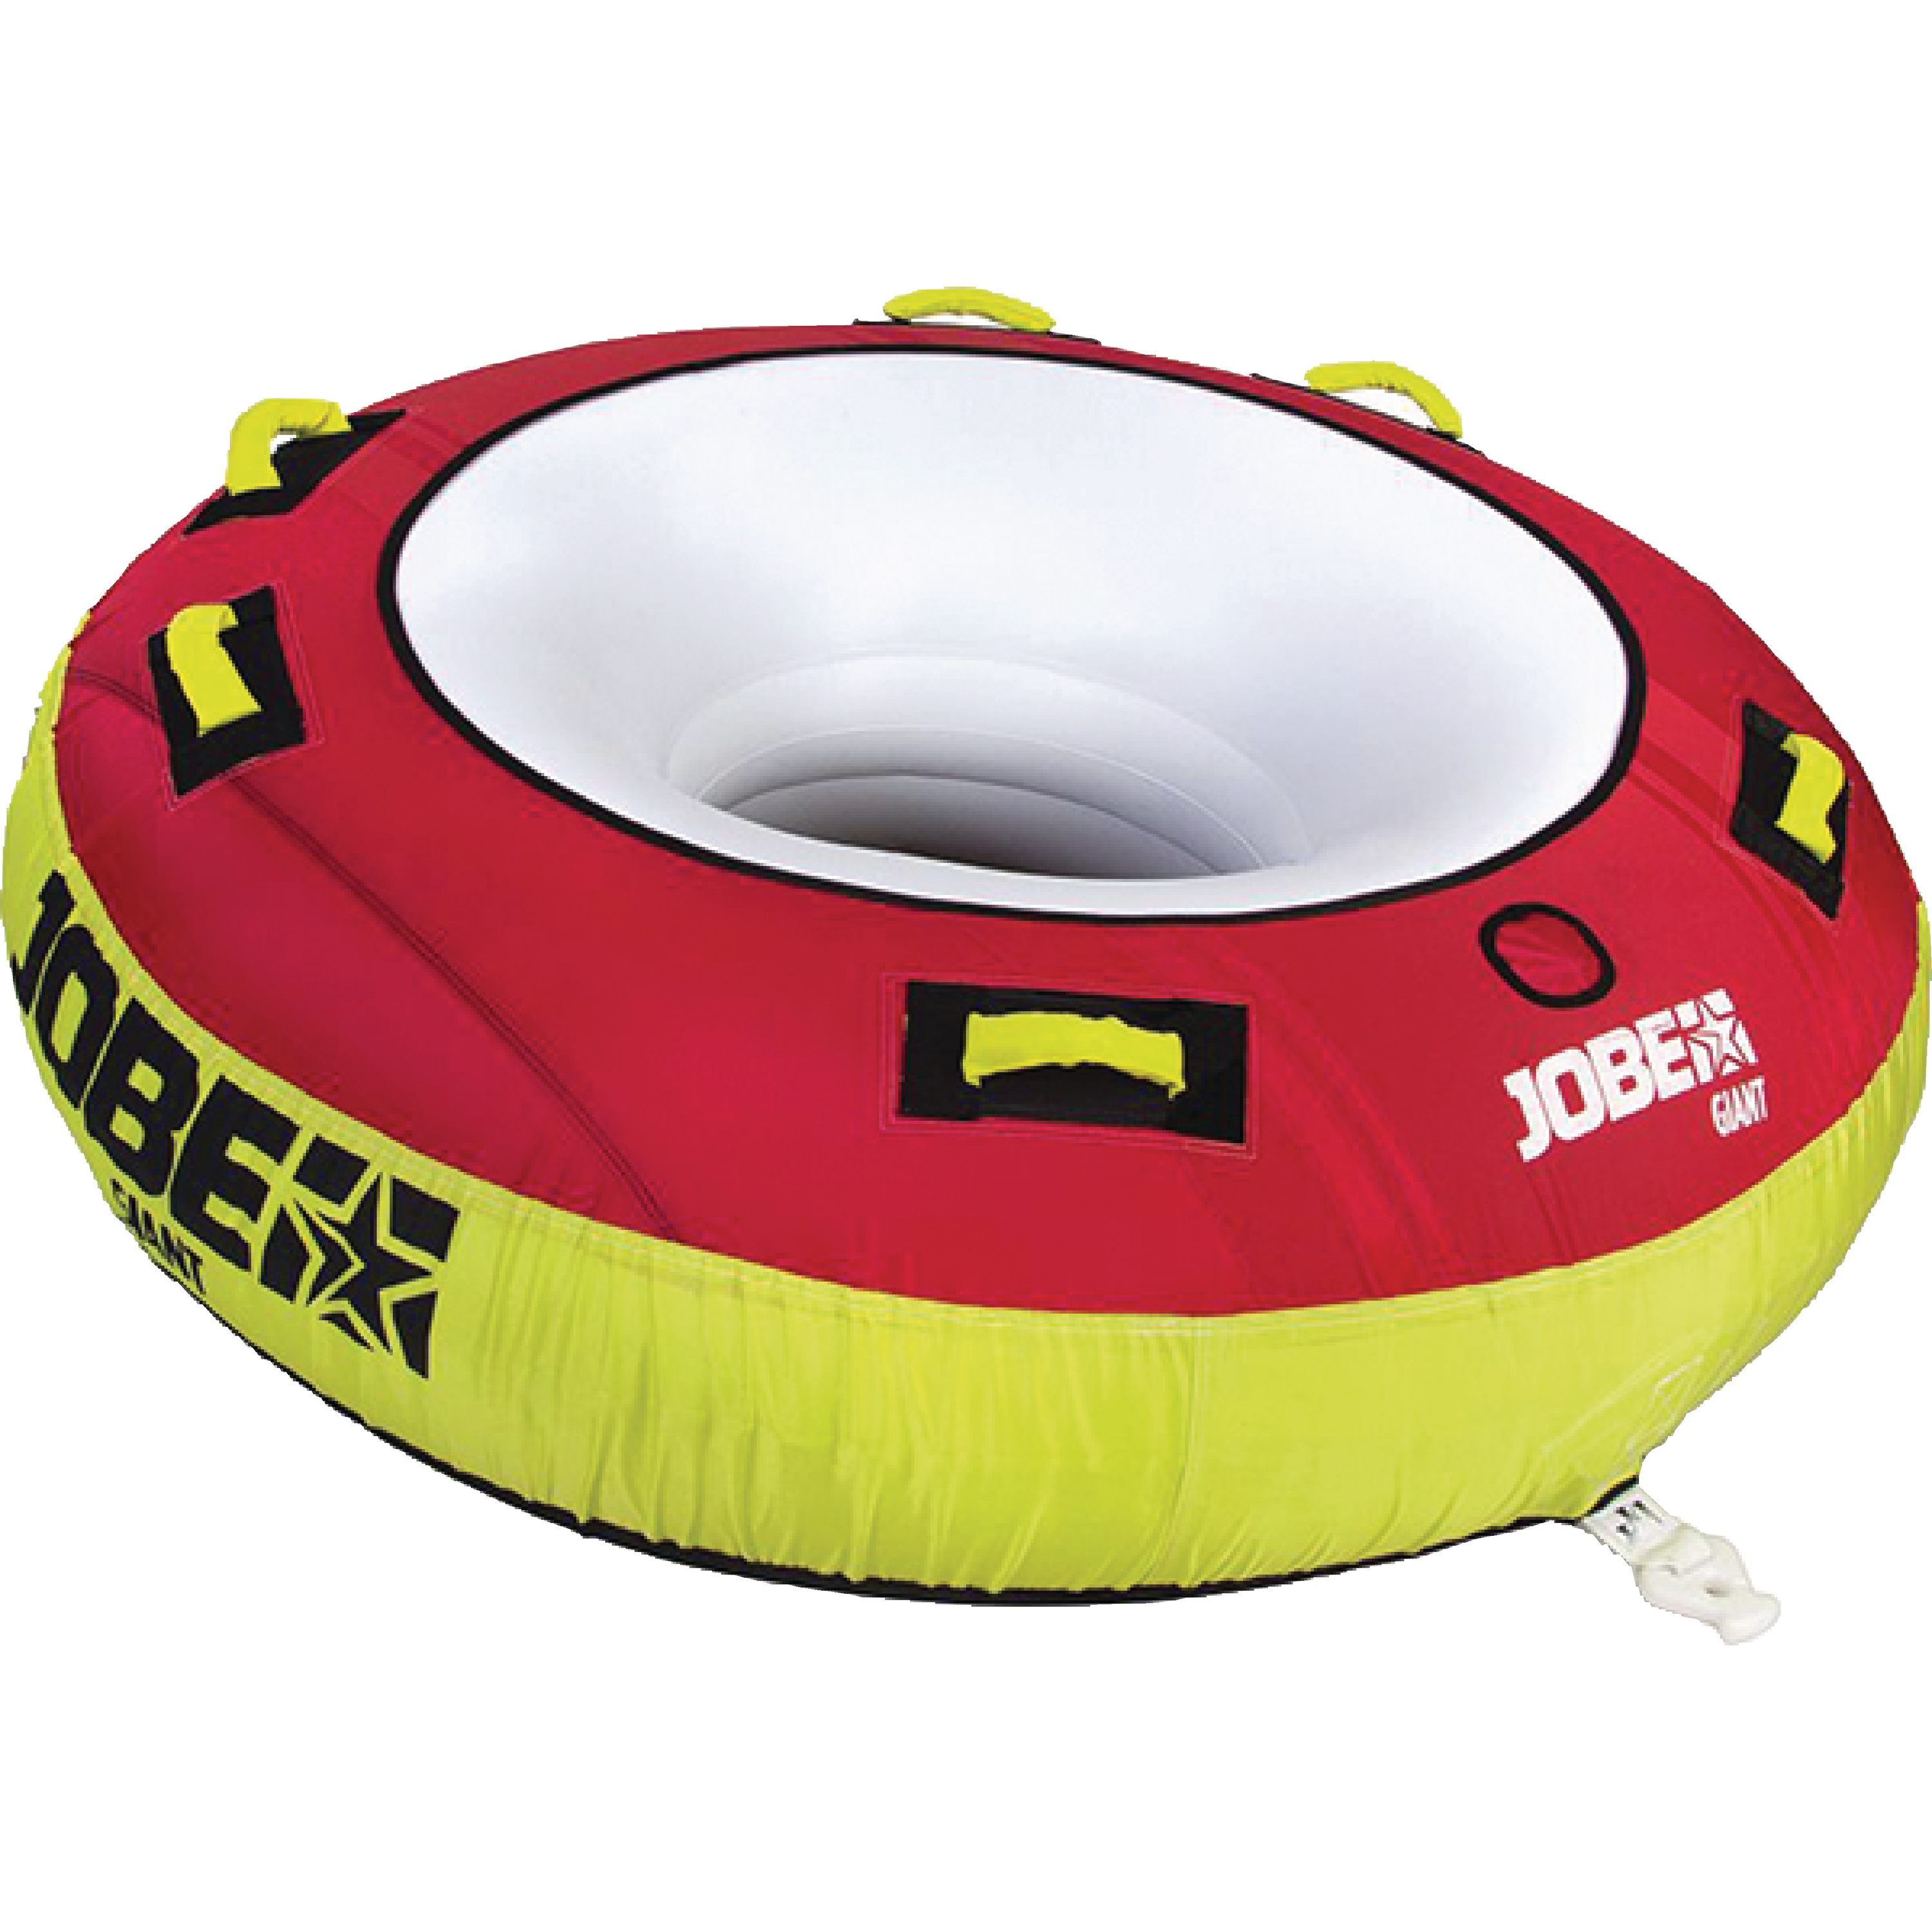 Jobe 230317001 Giant Red & Yellow 3-Person Rider Towable